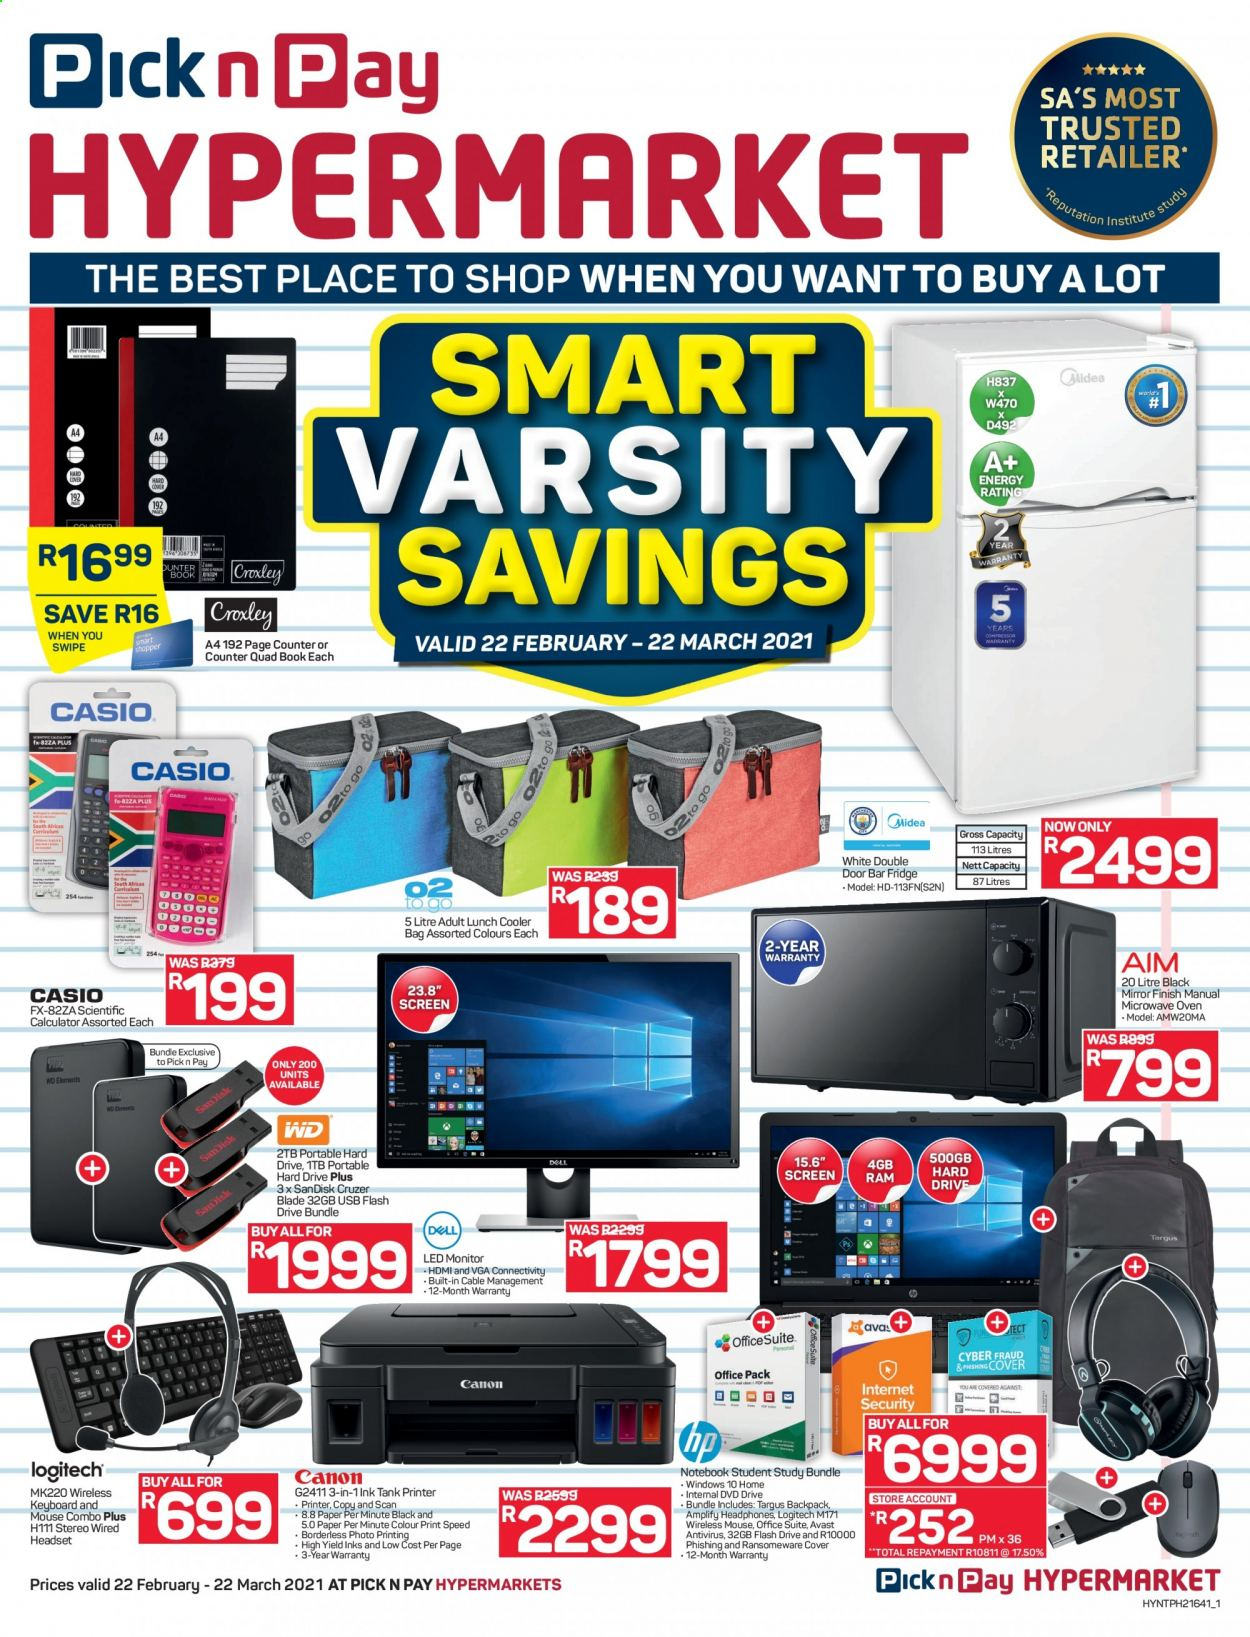 Pick n Pay catalogue  - 02.22.2021 - 03.22.2021 - Sales products - anti-virus, Sandisk, cooler bag, notebook, calculator, paper, dvd, book, keyboard, hard disk, flash drive, Logitech, mouse, portable hard drive, monitor, headset, headphones, bar fridge, refrigerator, fridge, oven, microwave oven, printer, backpack, bag, windows, door, cable, cruzer, led. Page 1.